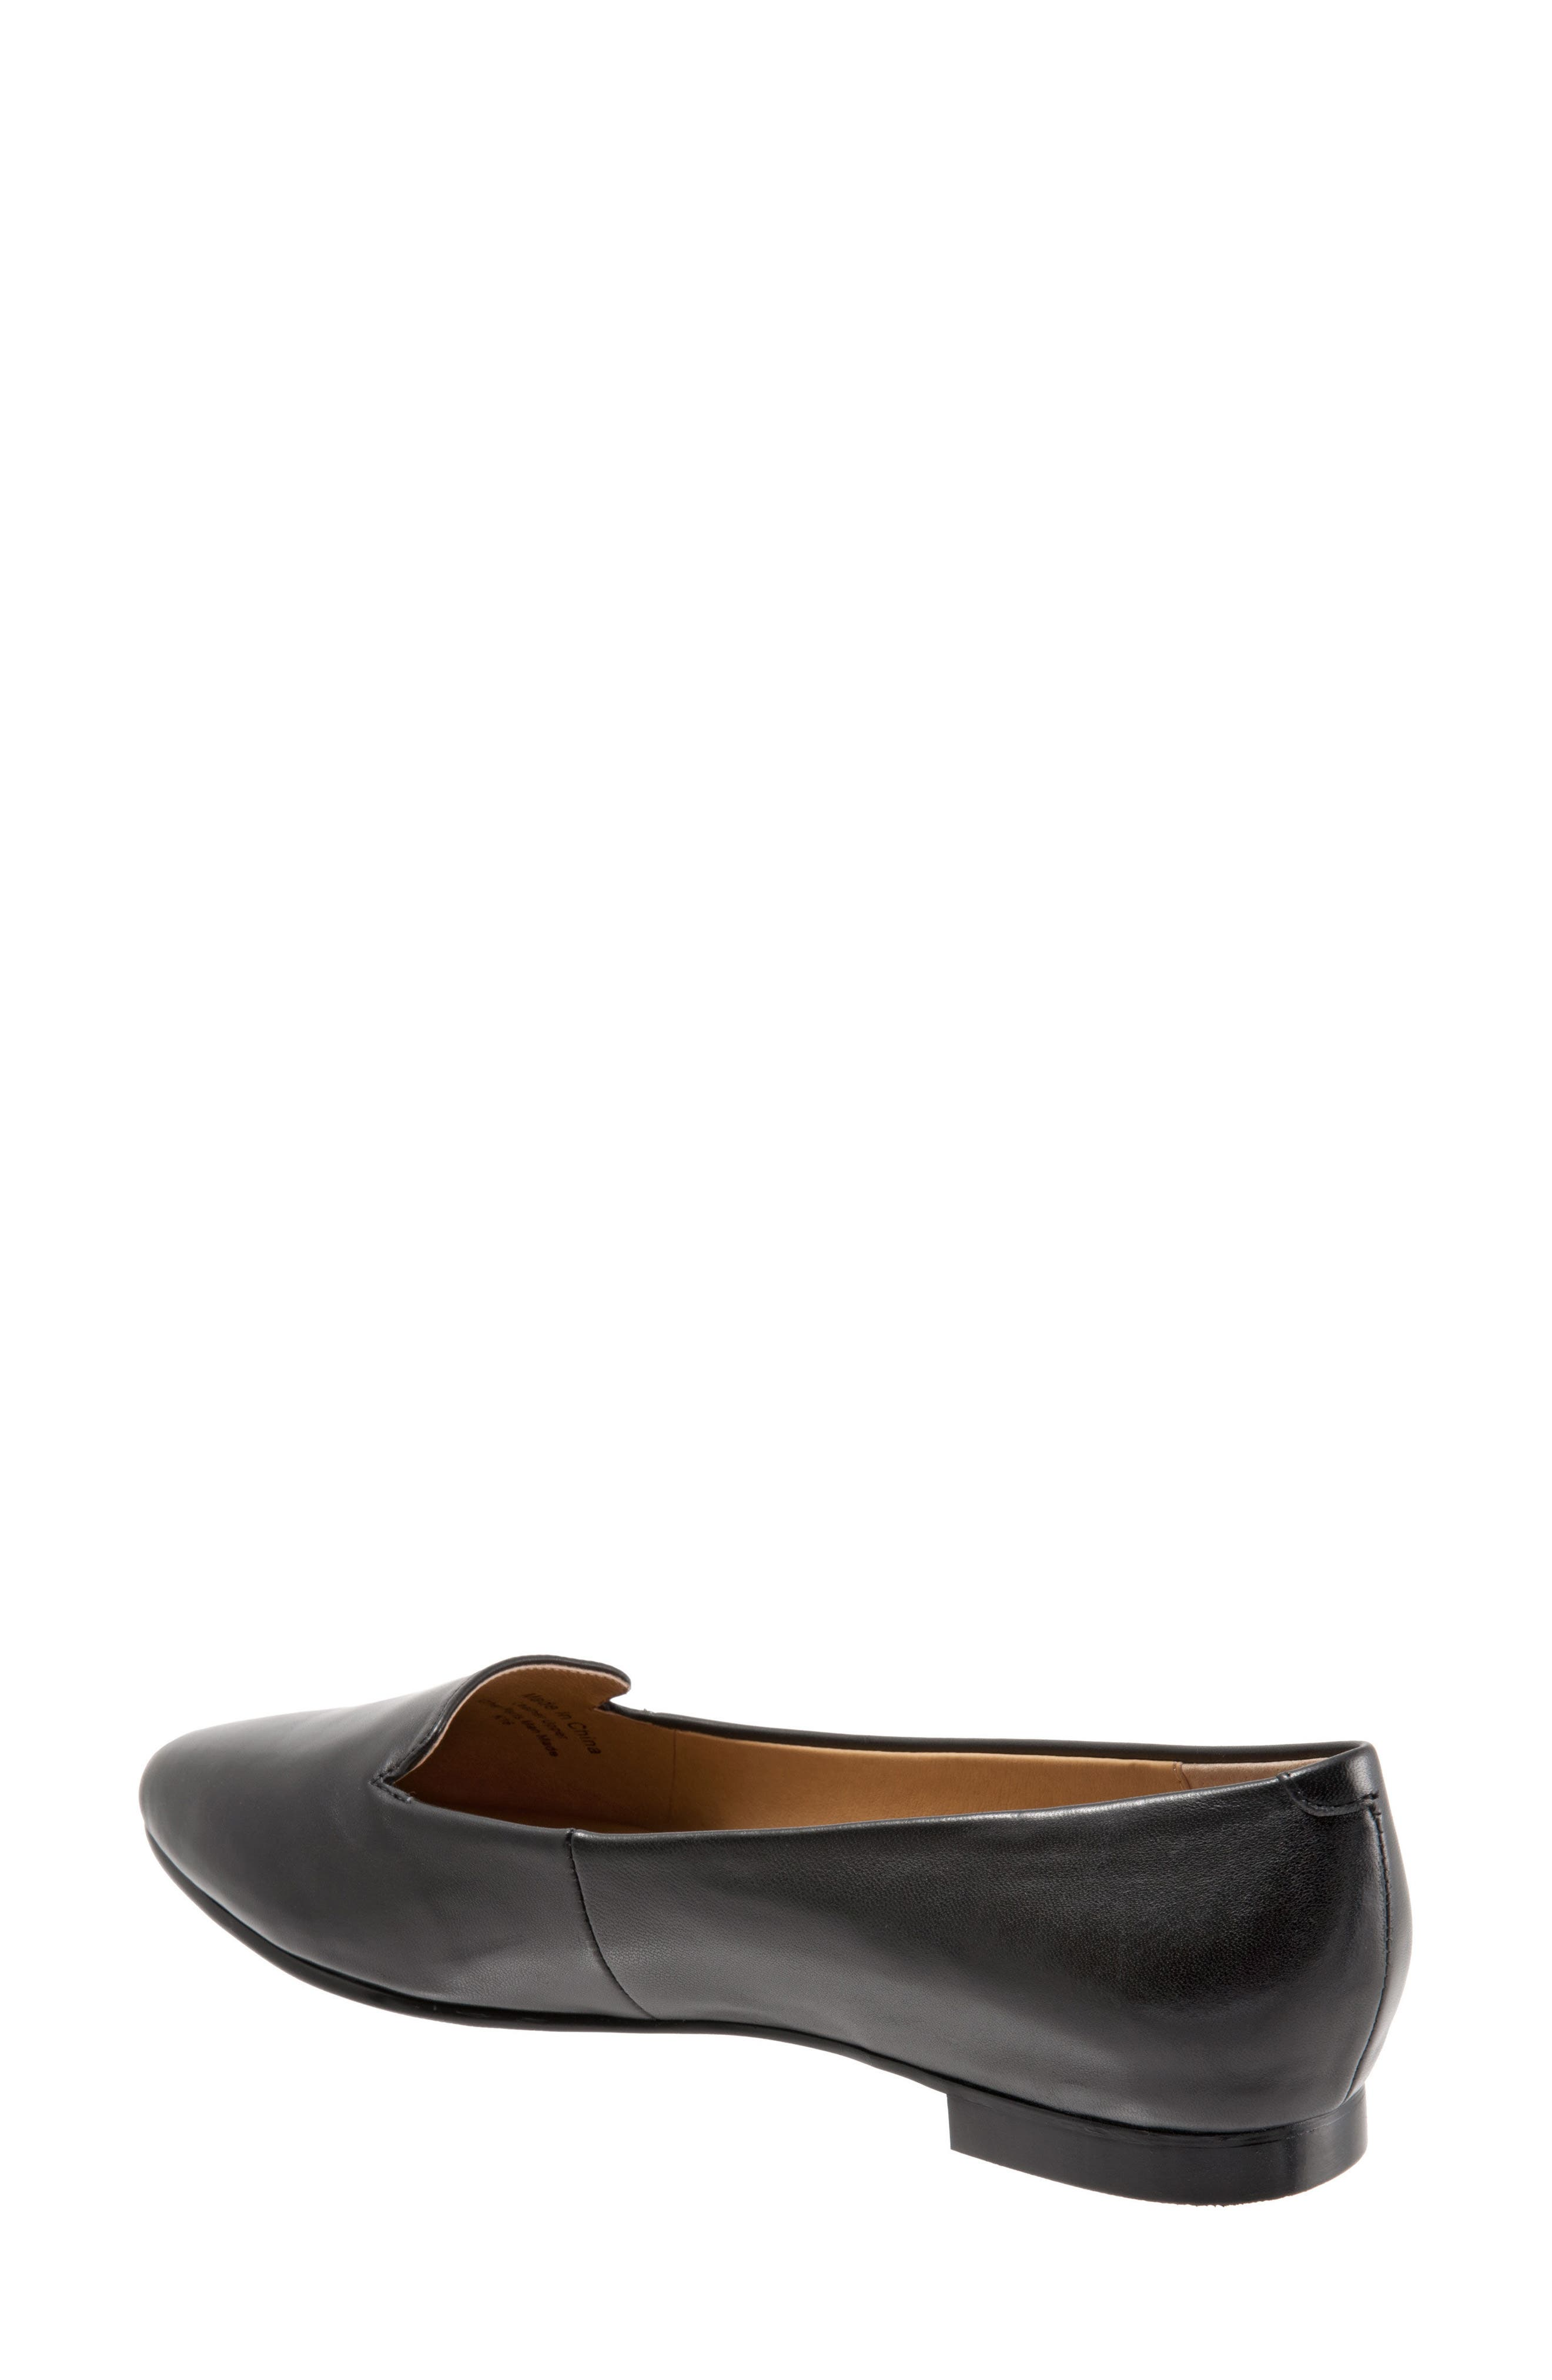 TROTTERS, Harlowe Pointy Toe Loafer, Alternate thumbnail 2, color, BLACK LEATHER